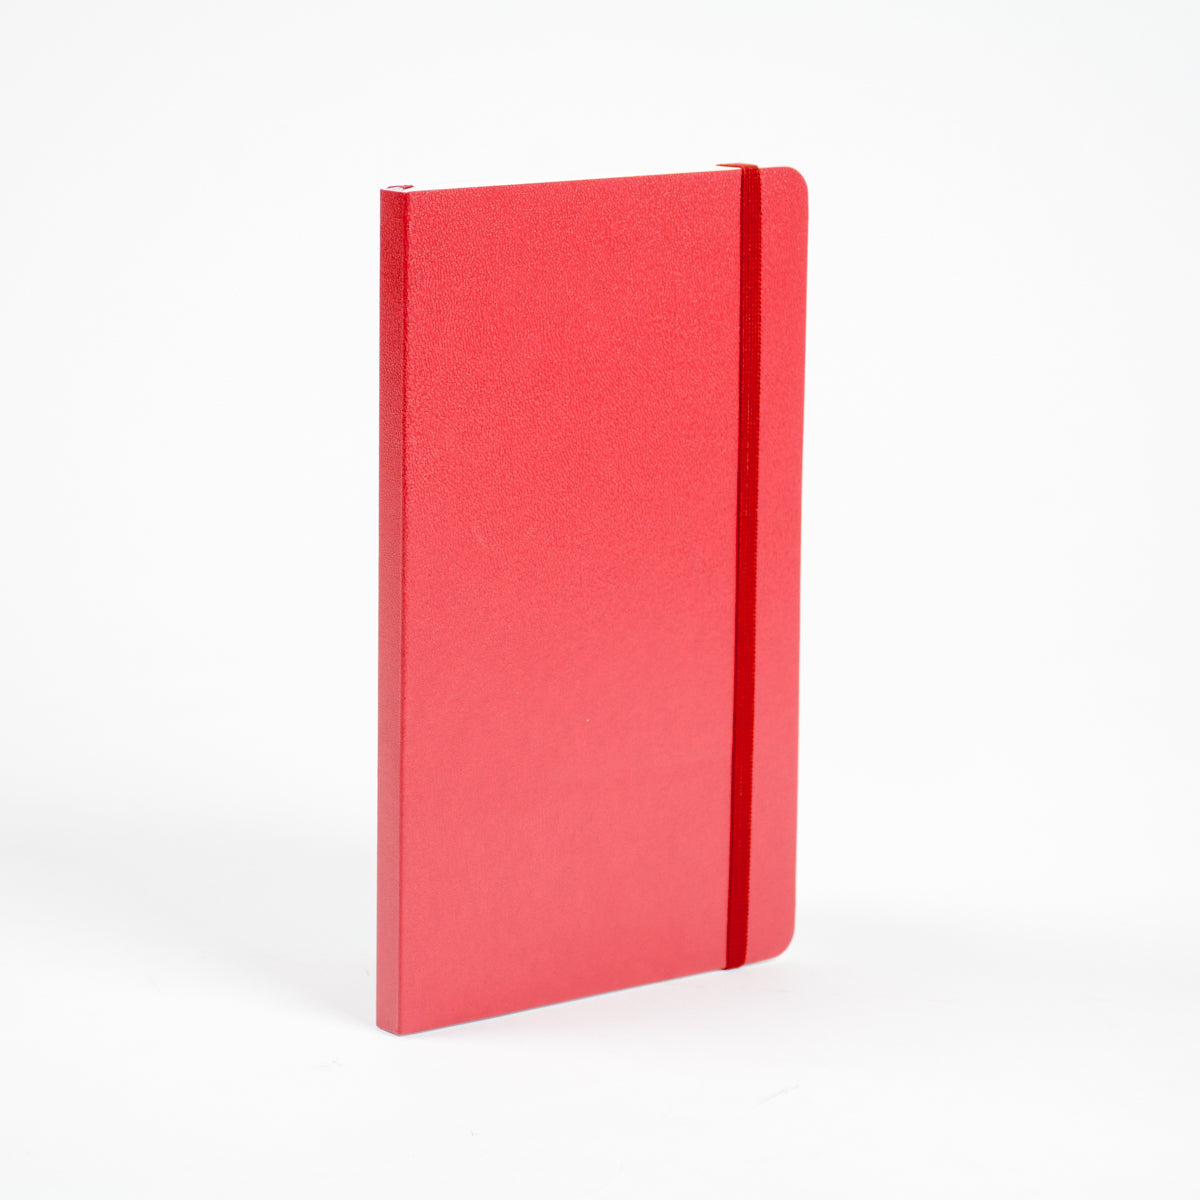 https://www.letternote.in/collections/classic-notebooks